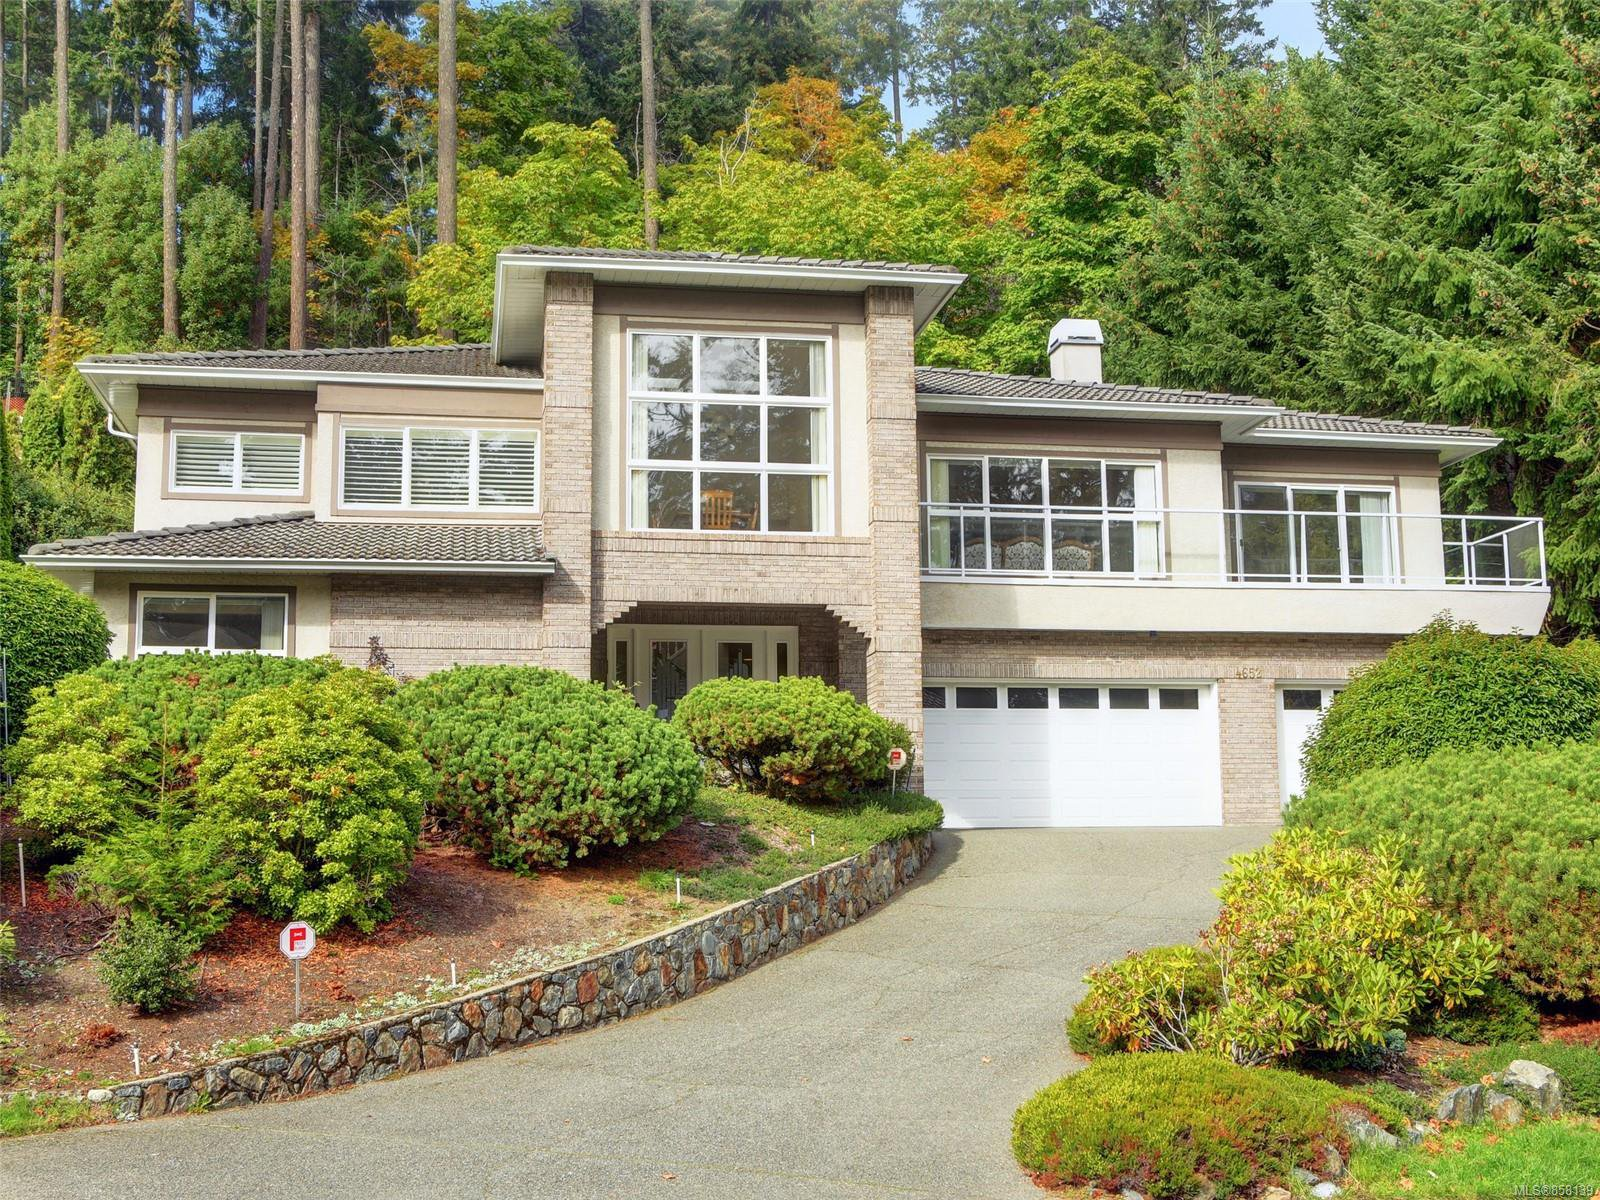 Main Photo: 4652 Boulderwood Dr in : SE Broadmead House for sale (Saanich East)  : MLS®# 858139